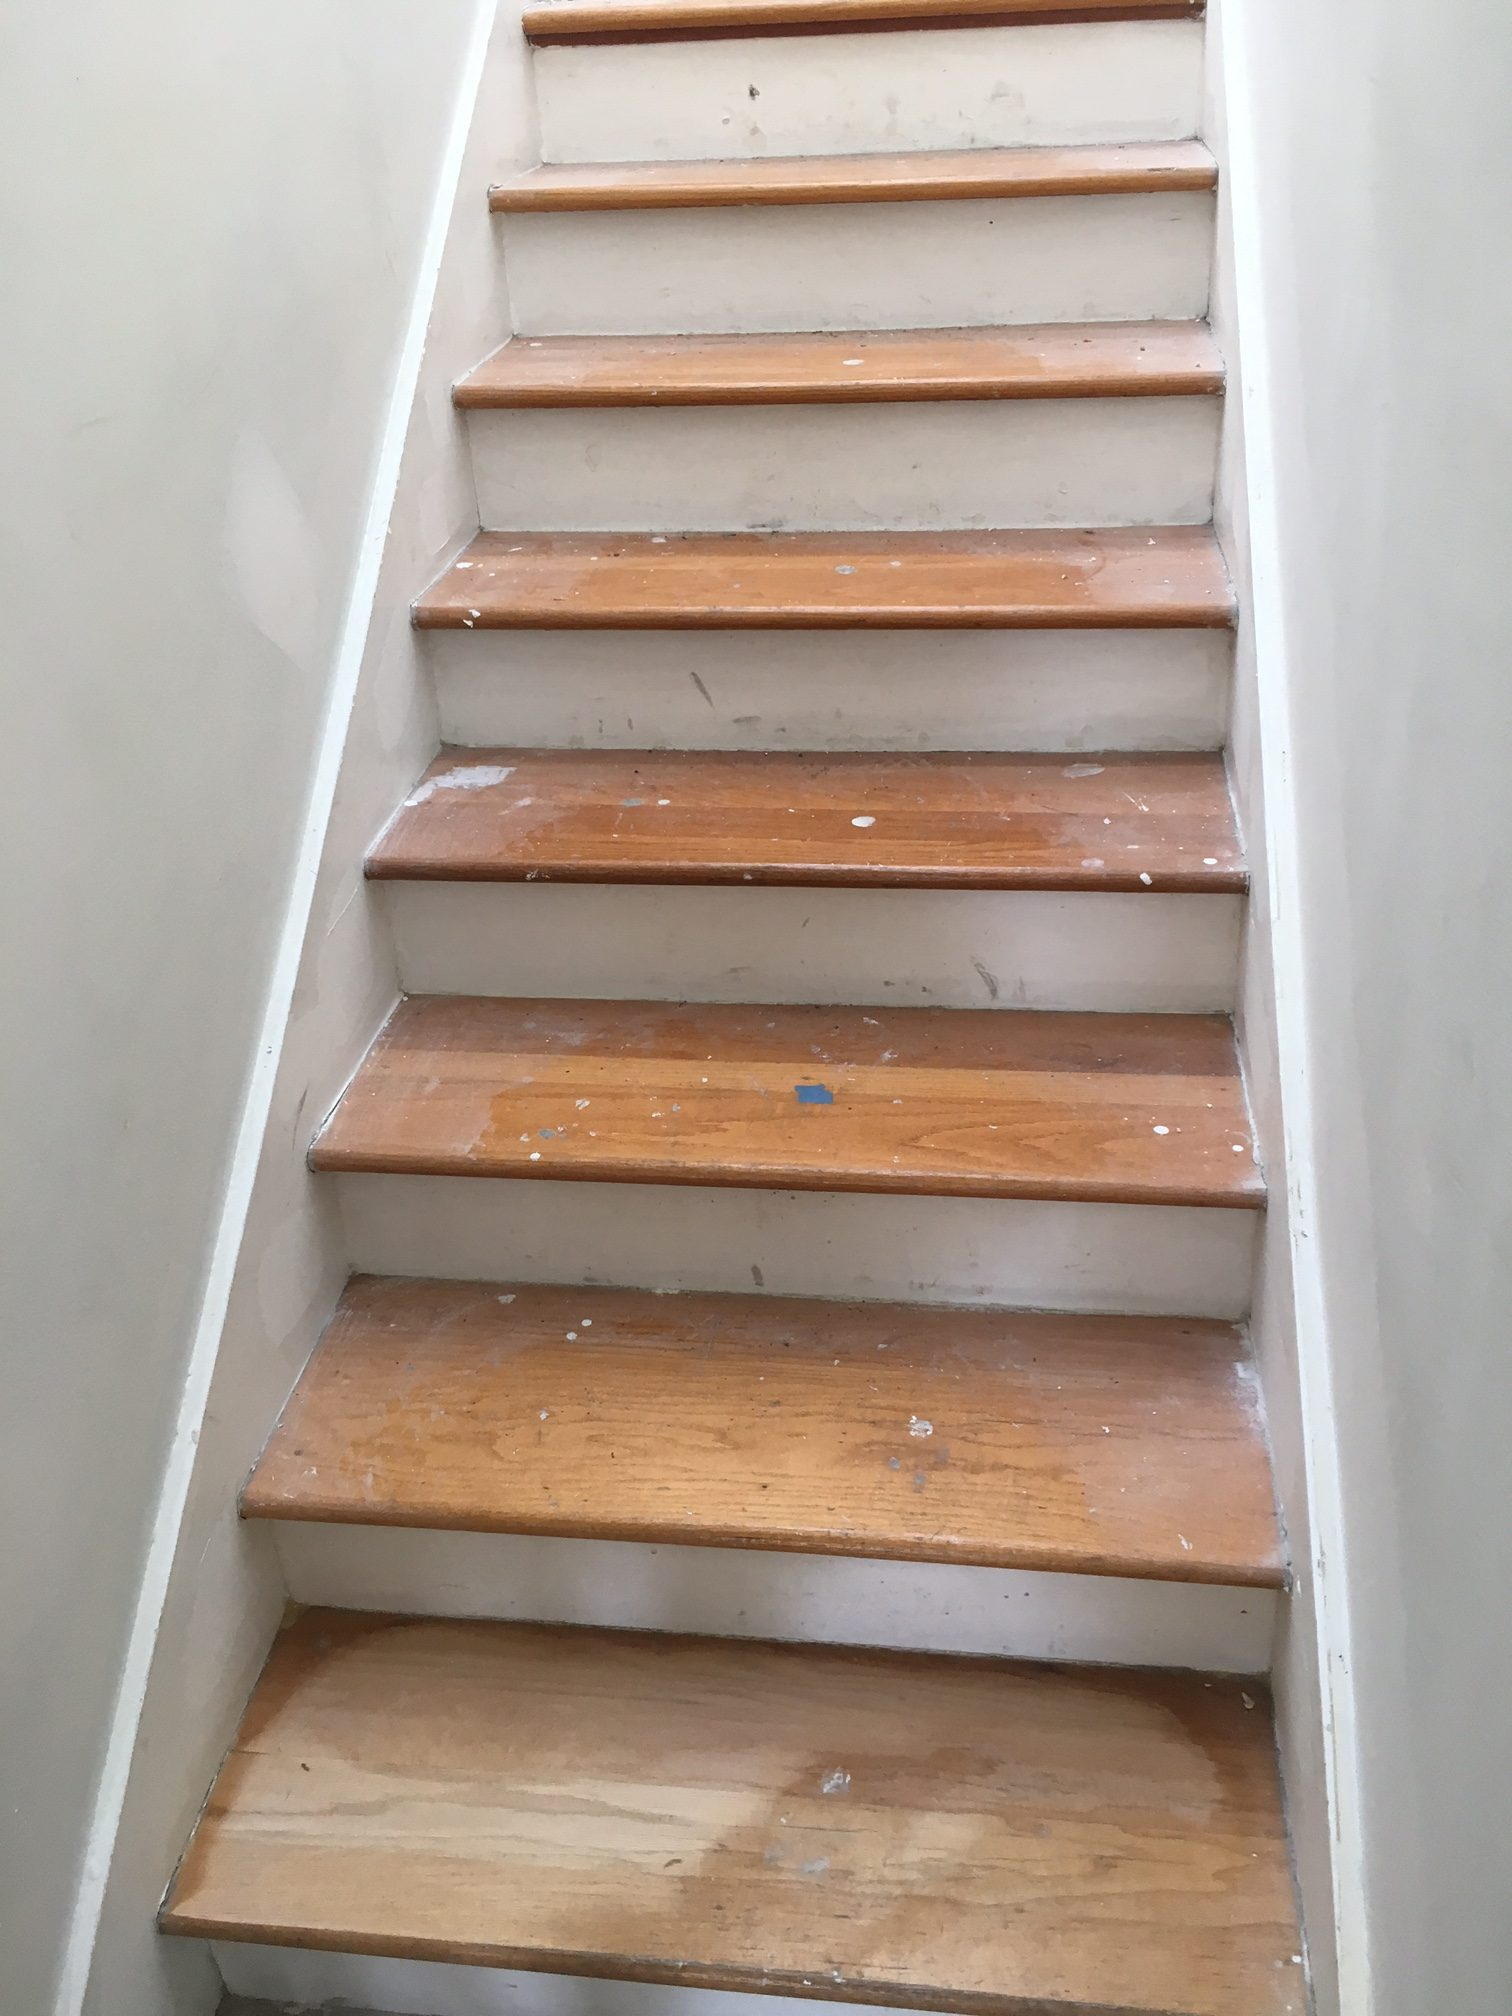 After Seeing The Tile Flooring And Their Stair Treads, We Recommended  Refinishing The Red Oak Stair Treads To Simulate Their Wood Look Floor Tiles .